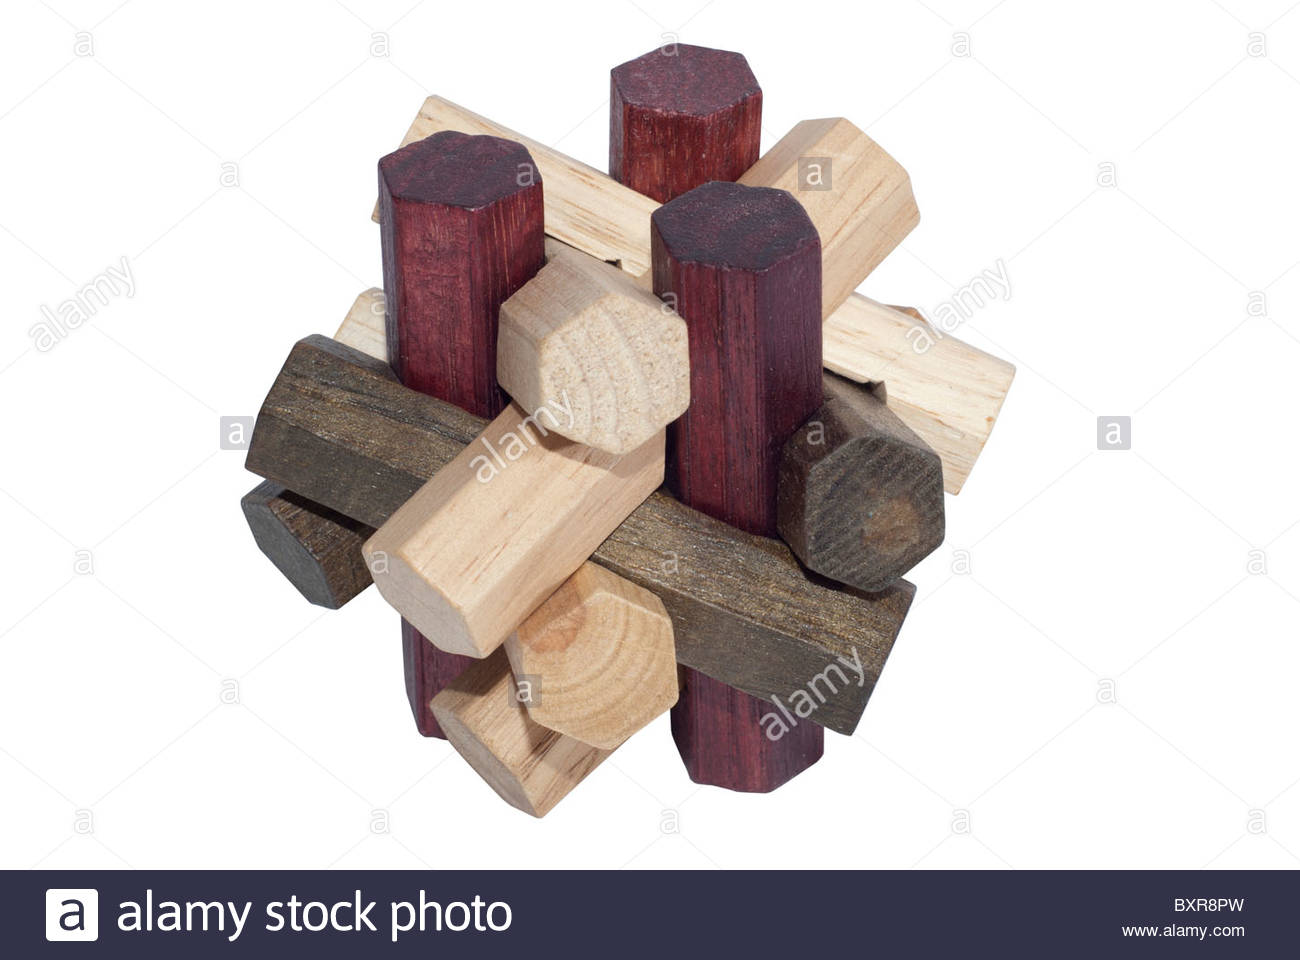 Intelligence game made with wooden pieces. Logic puzzle - Stock Image